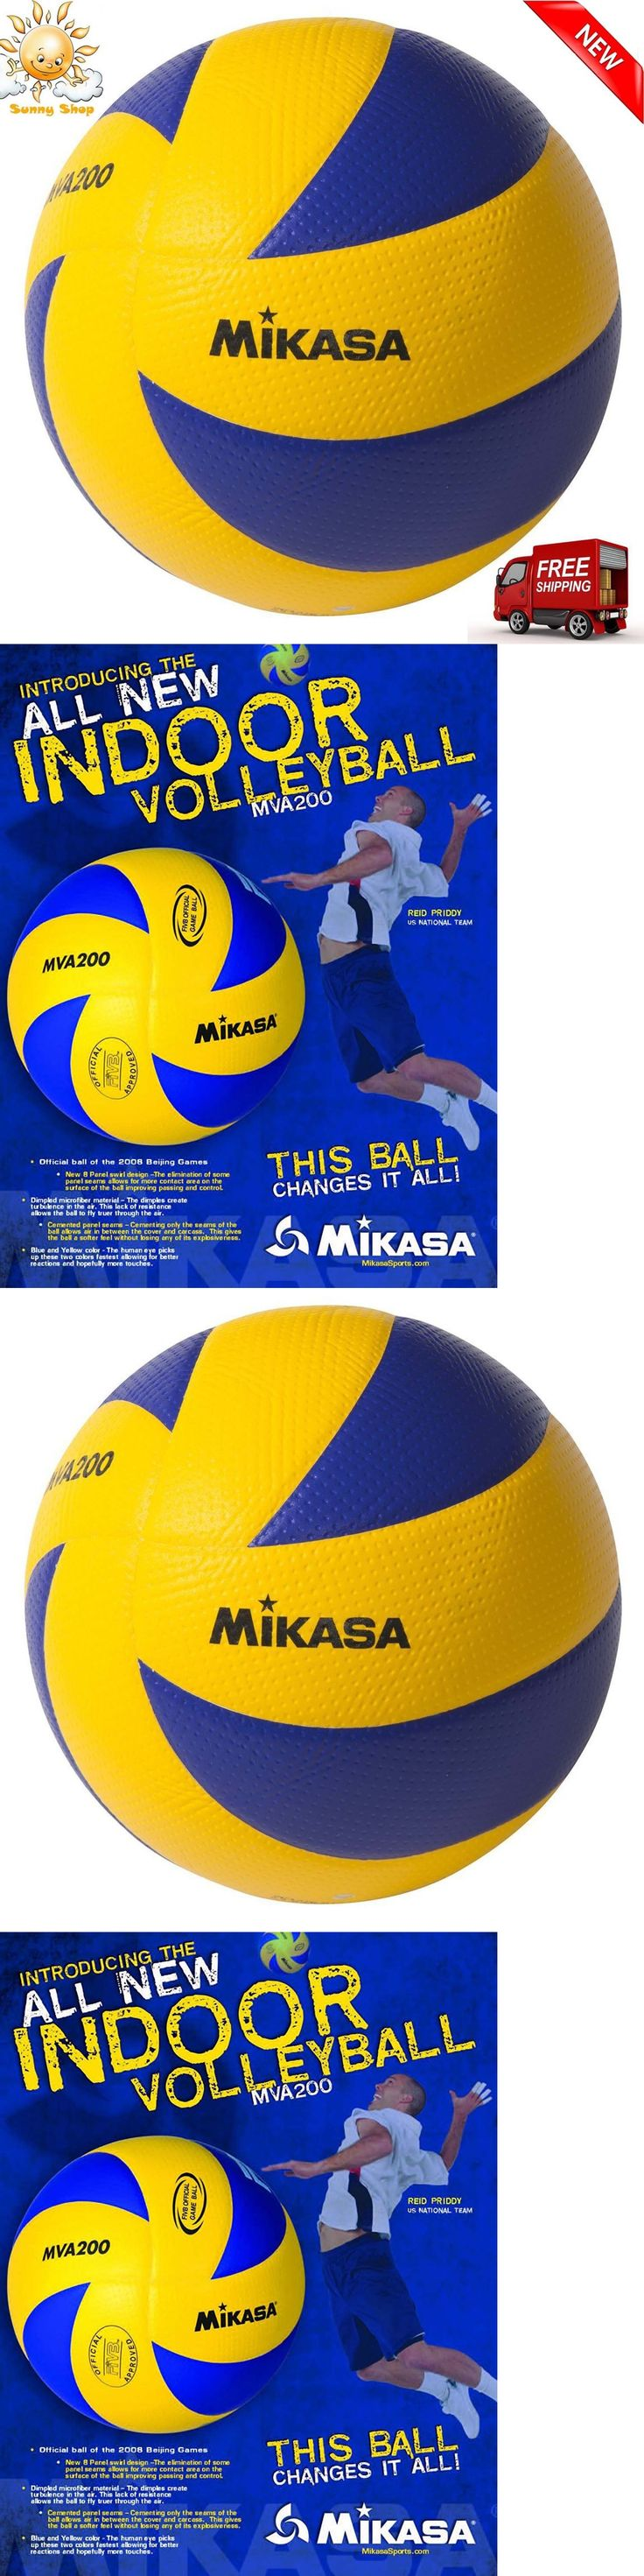 Volleyballs 159132: Mikasa Fivb Volleyball Official Olympic Game Ball Dimpled Surface Mva200 New -> BUY IT NOW ONLY: $45.89 on eBay!